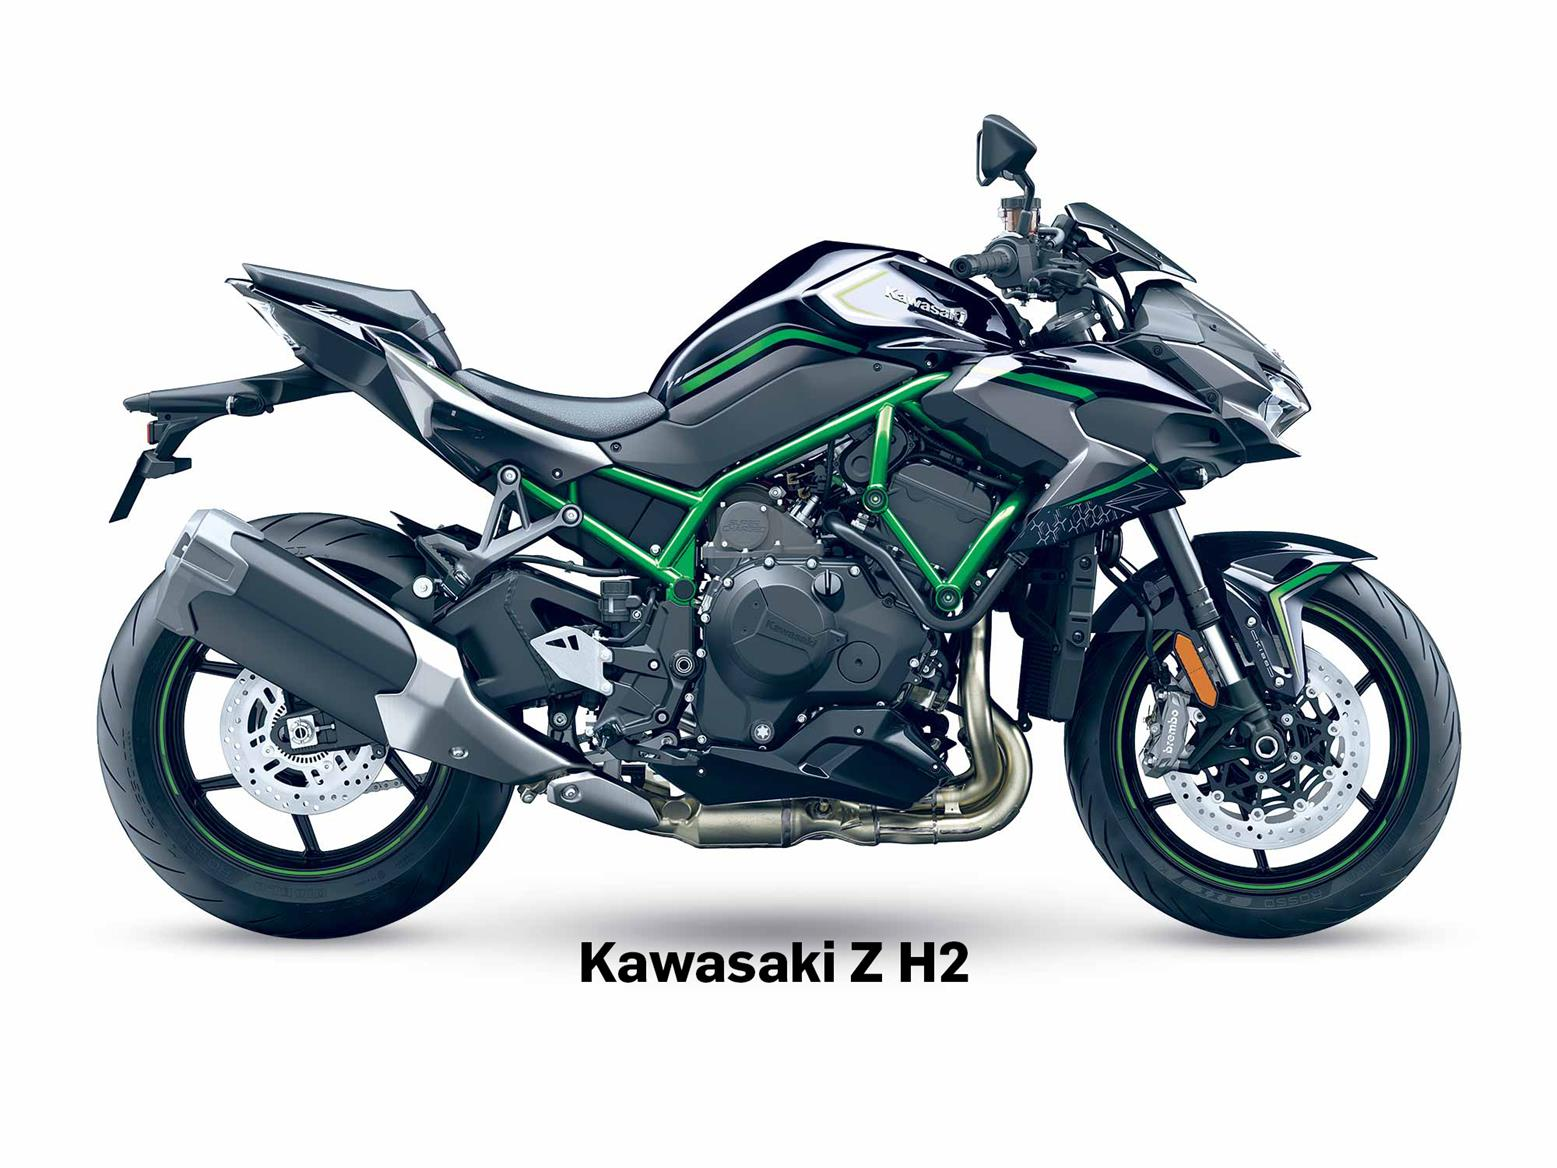 Read MCN's expert Kawasaki Z H2 long term test review here